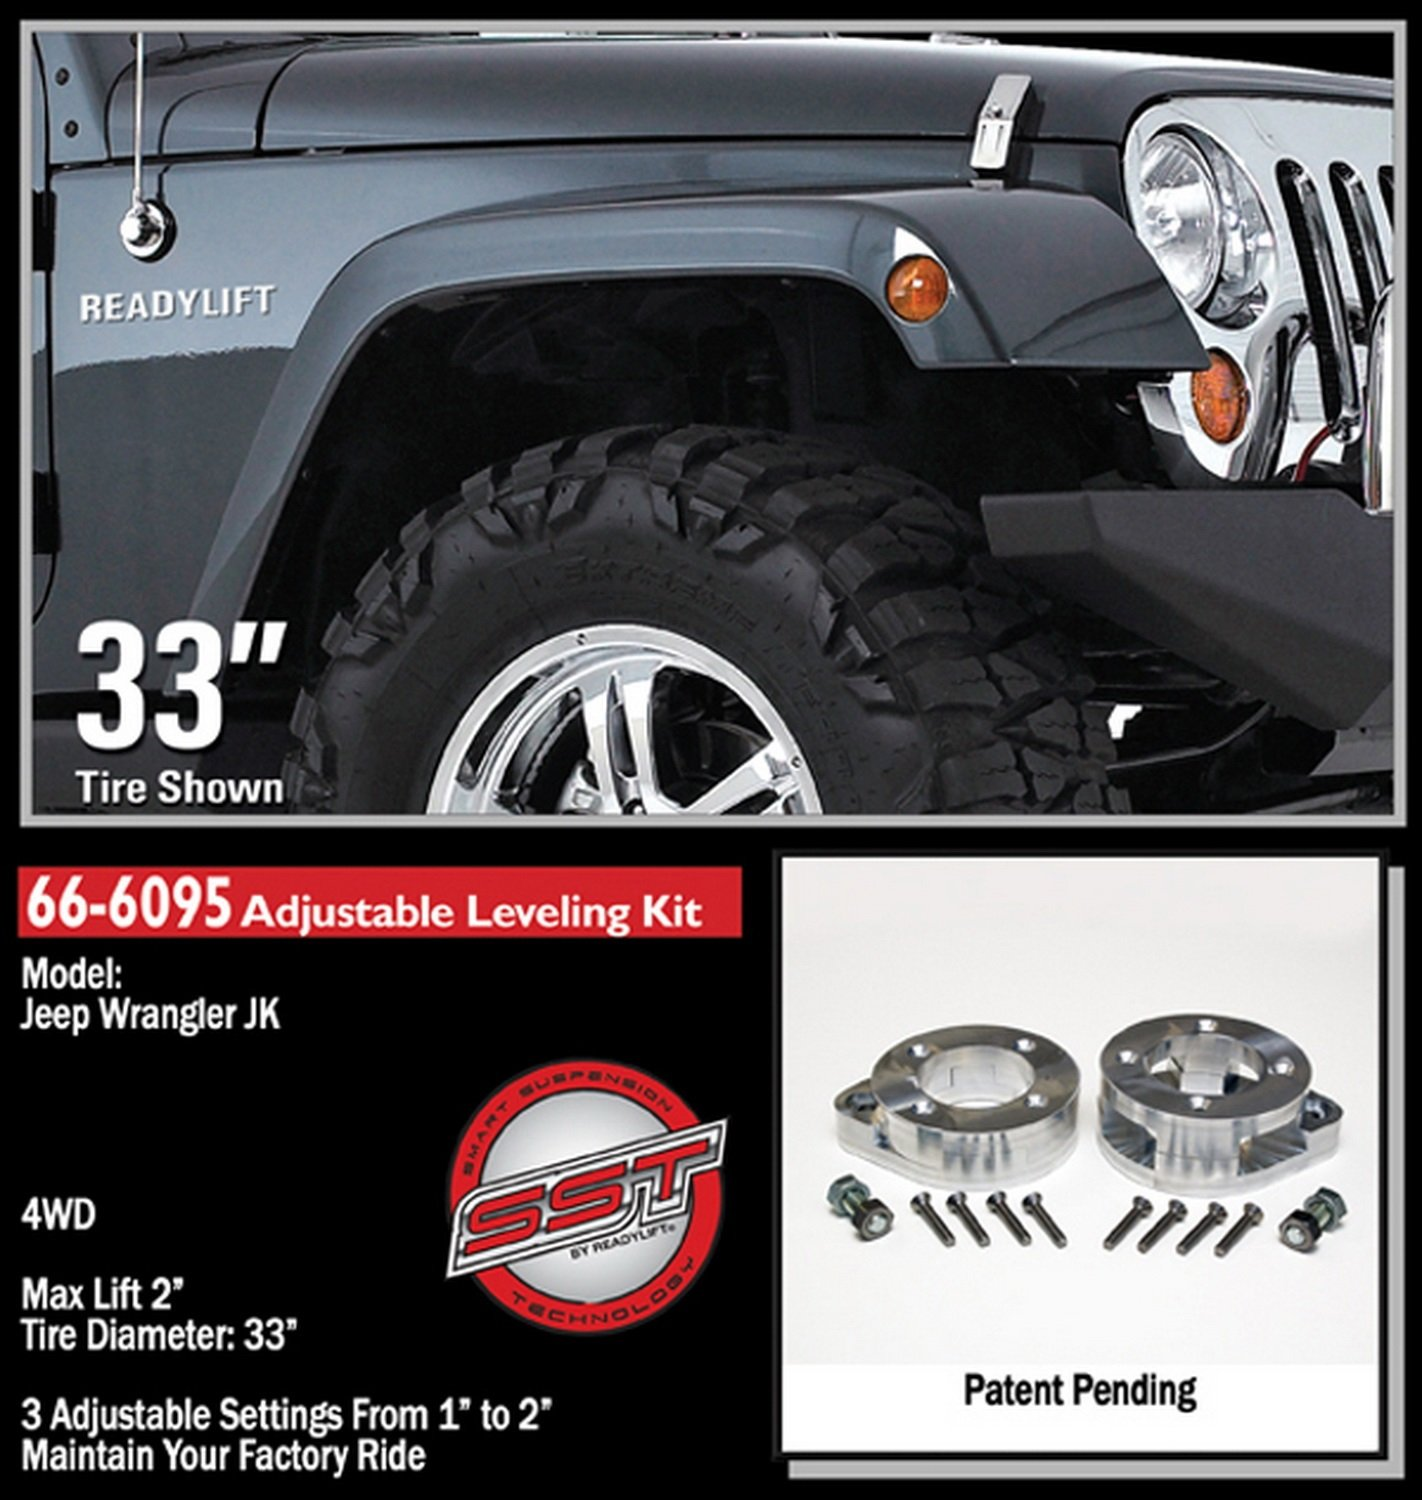 jl the is all custom jeep and mopar for mojitos parts ready lift kits wrangler